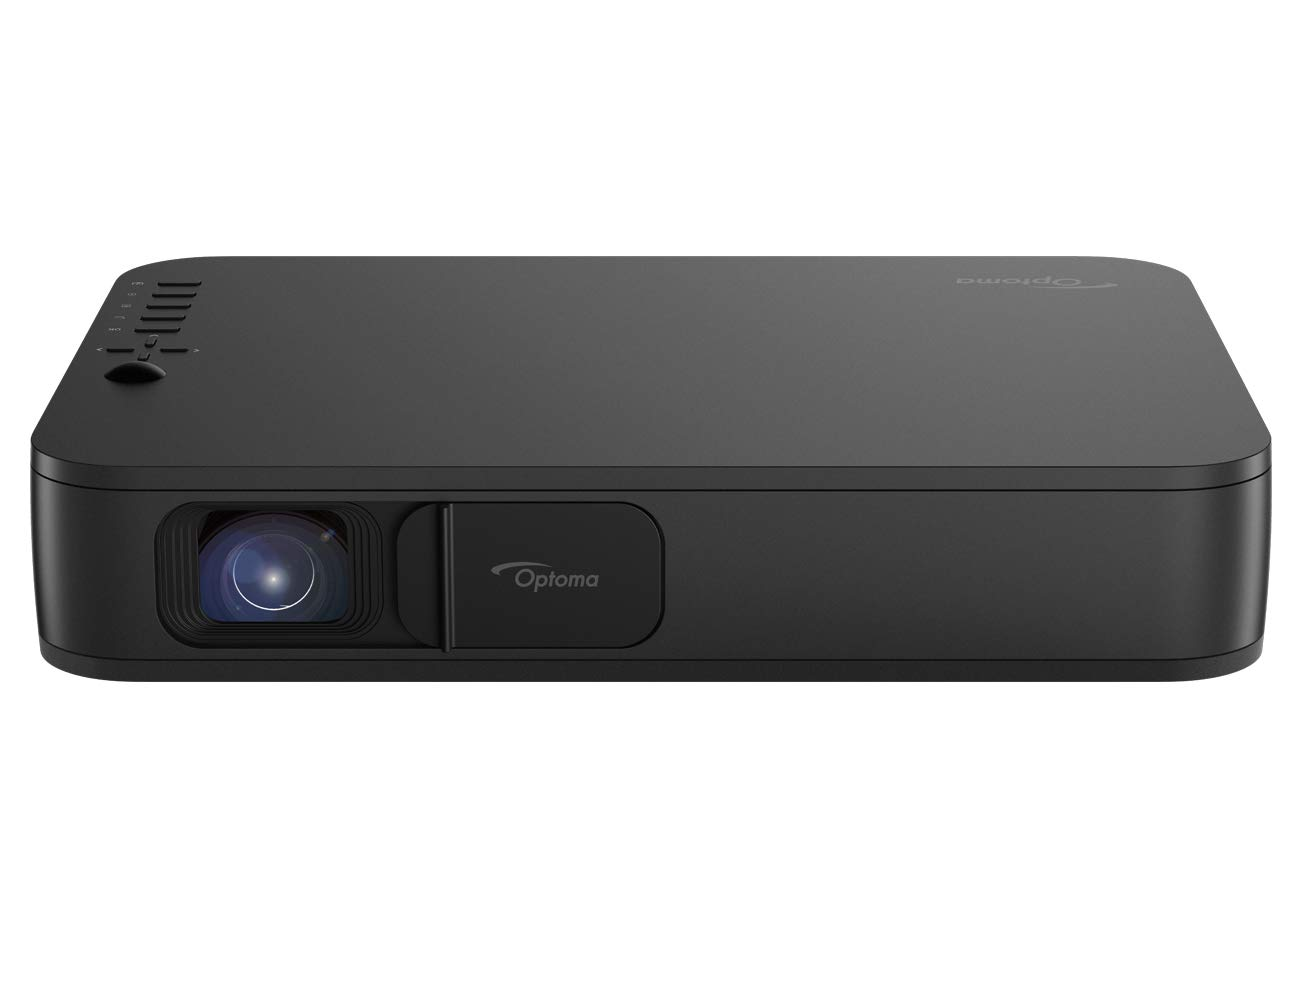 Optoma LH160 Full HD 1080p proyector DLP portátil: Amazon.es ...